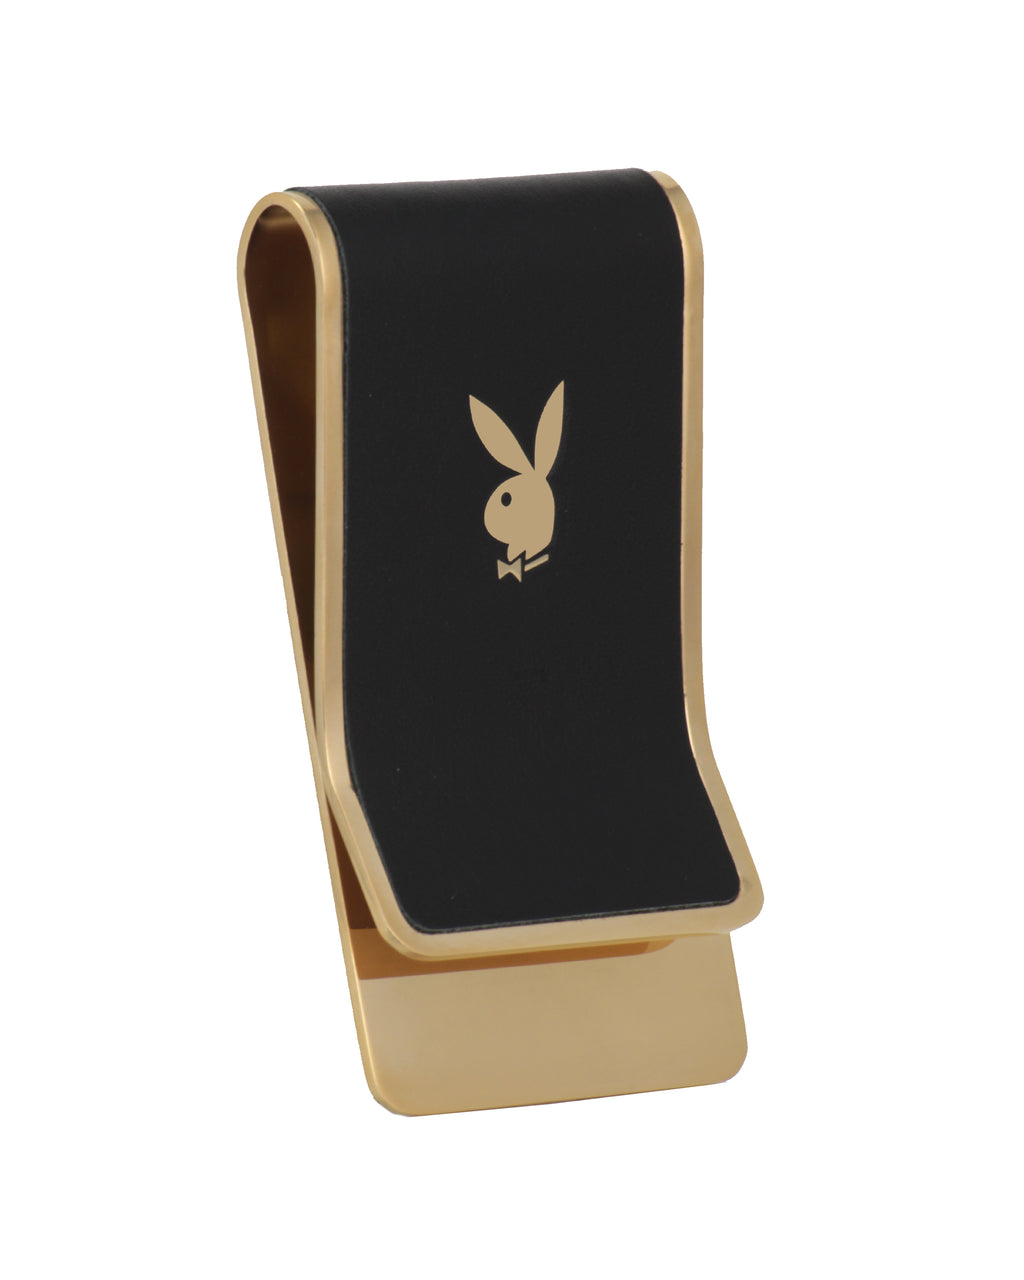 Playboy Leather and Stainless Steel Money Clip